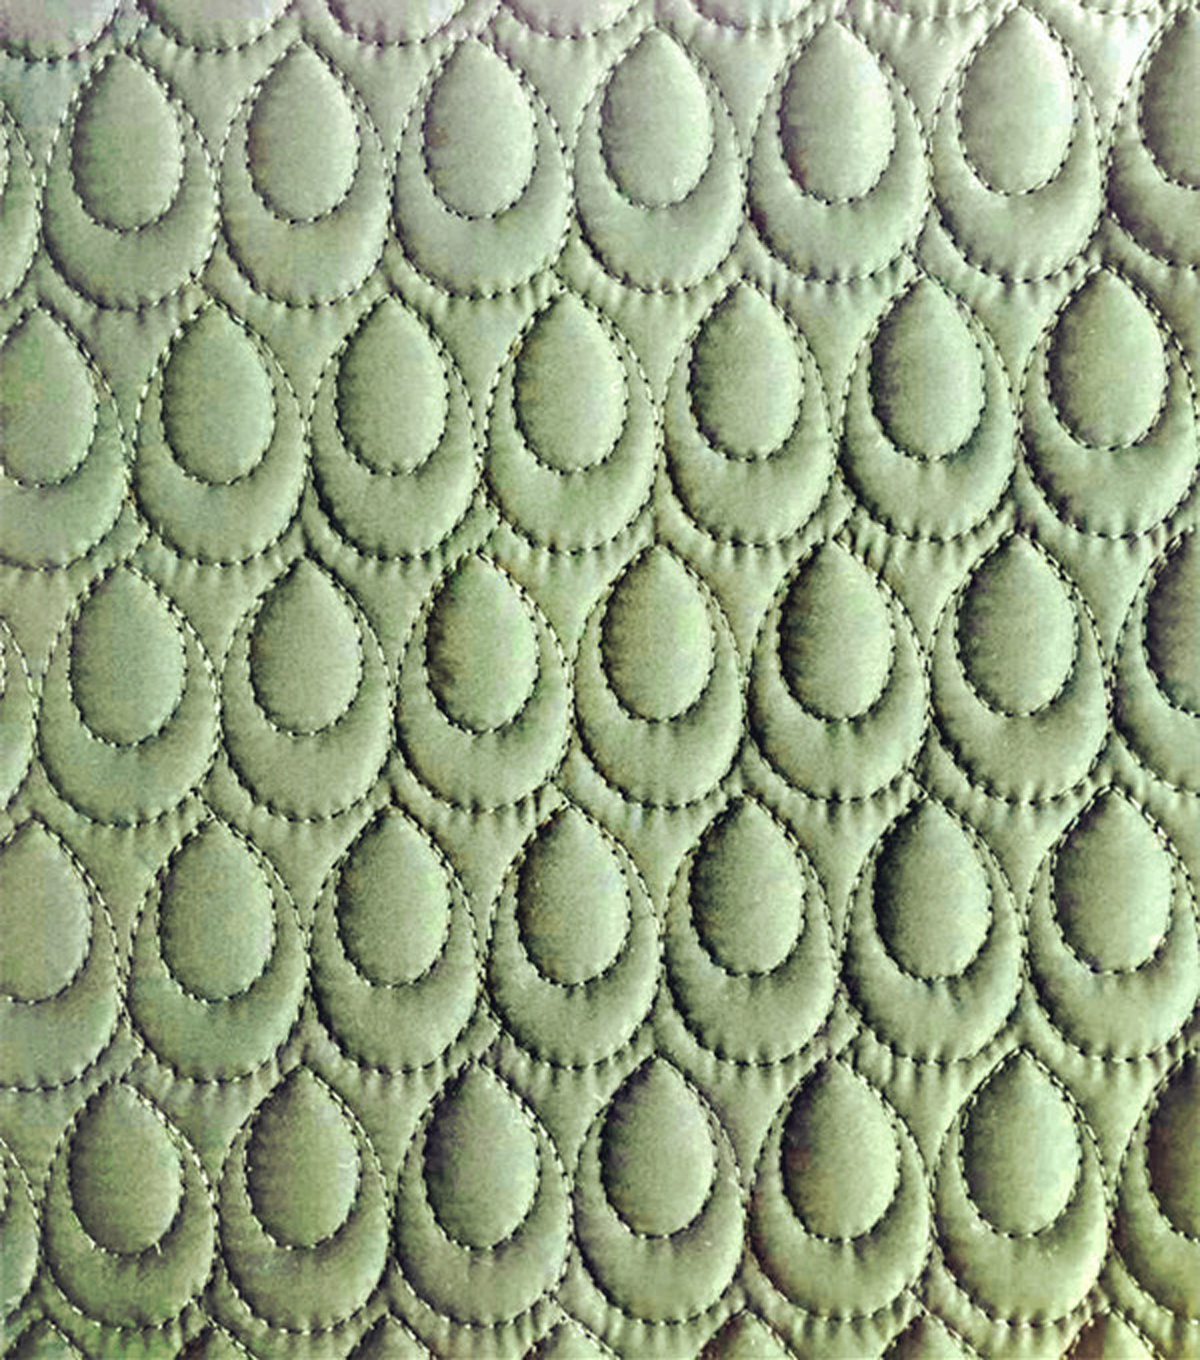 Wandering Spirits - Quilted Teardrop Solid Olive Fabric | JOANN : quilted fabric - Adamdwight.com